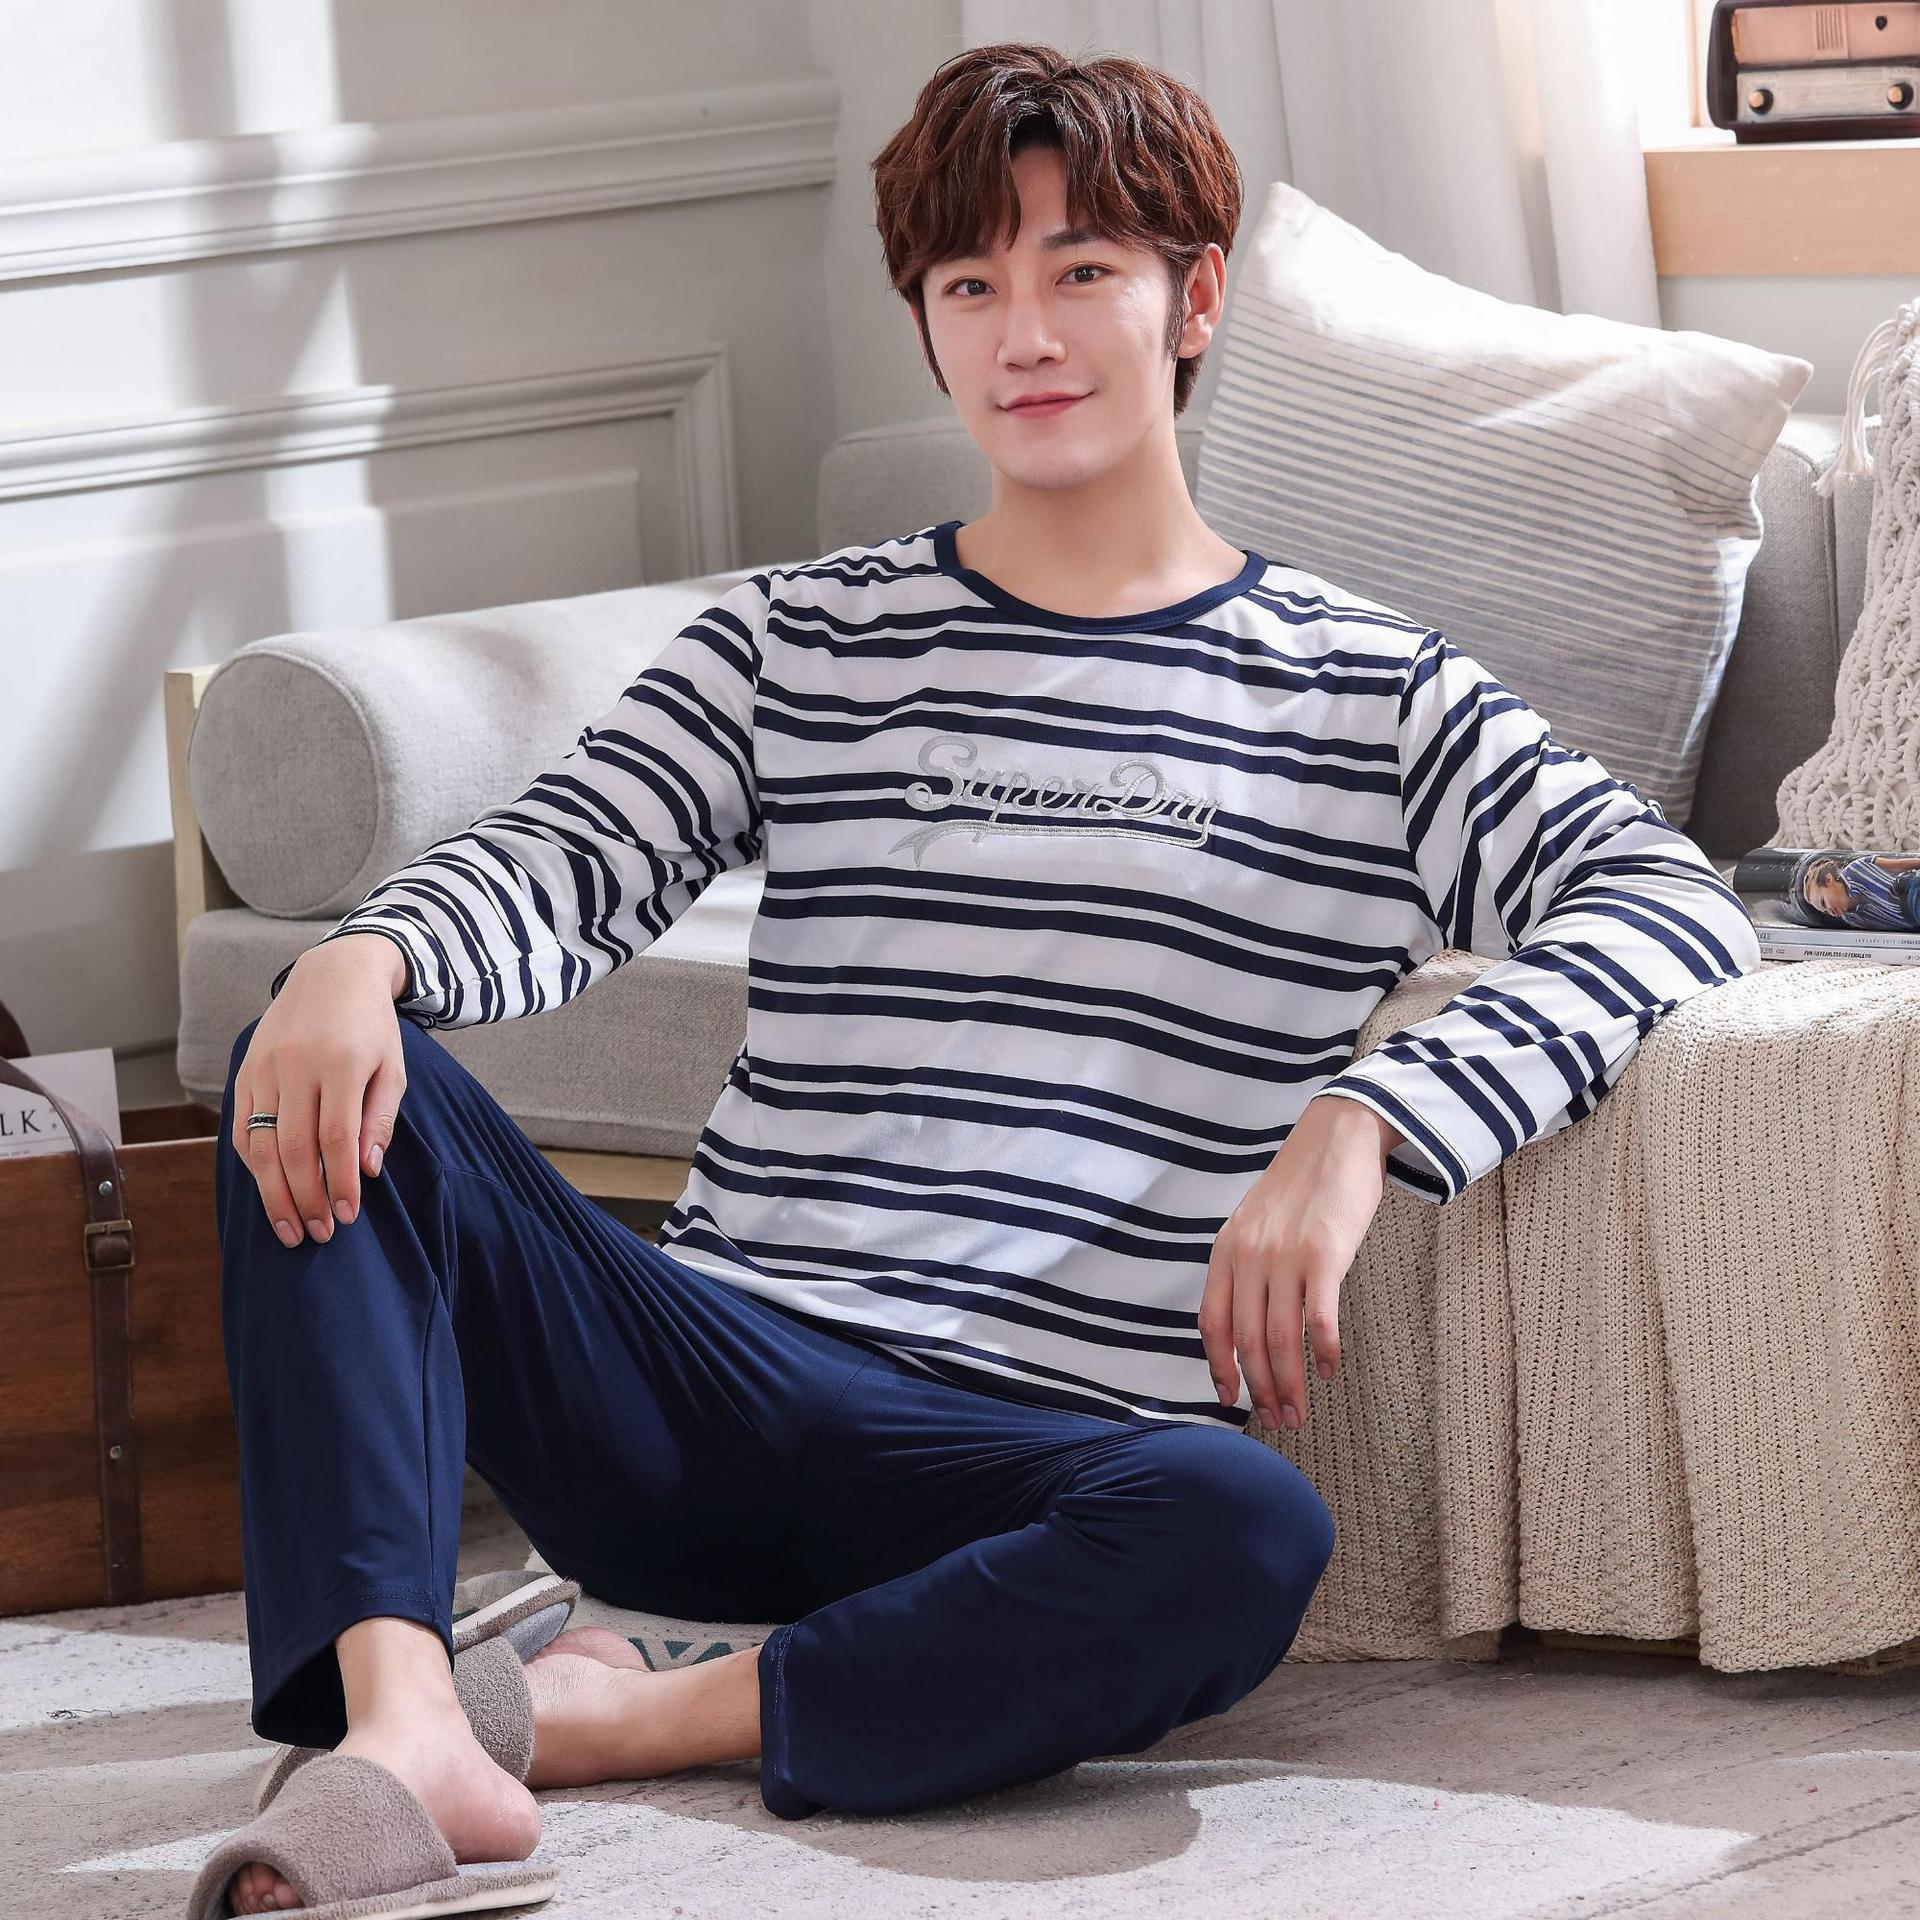 Wontive Men Pyjamas Suit Autumn New Long Sleeve Nightgown Stripe Pajamas Set For Male  Sleep Clothing Casual Nightie Sleepwear